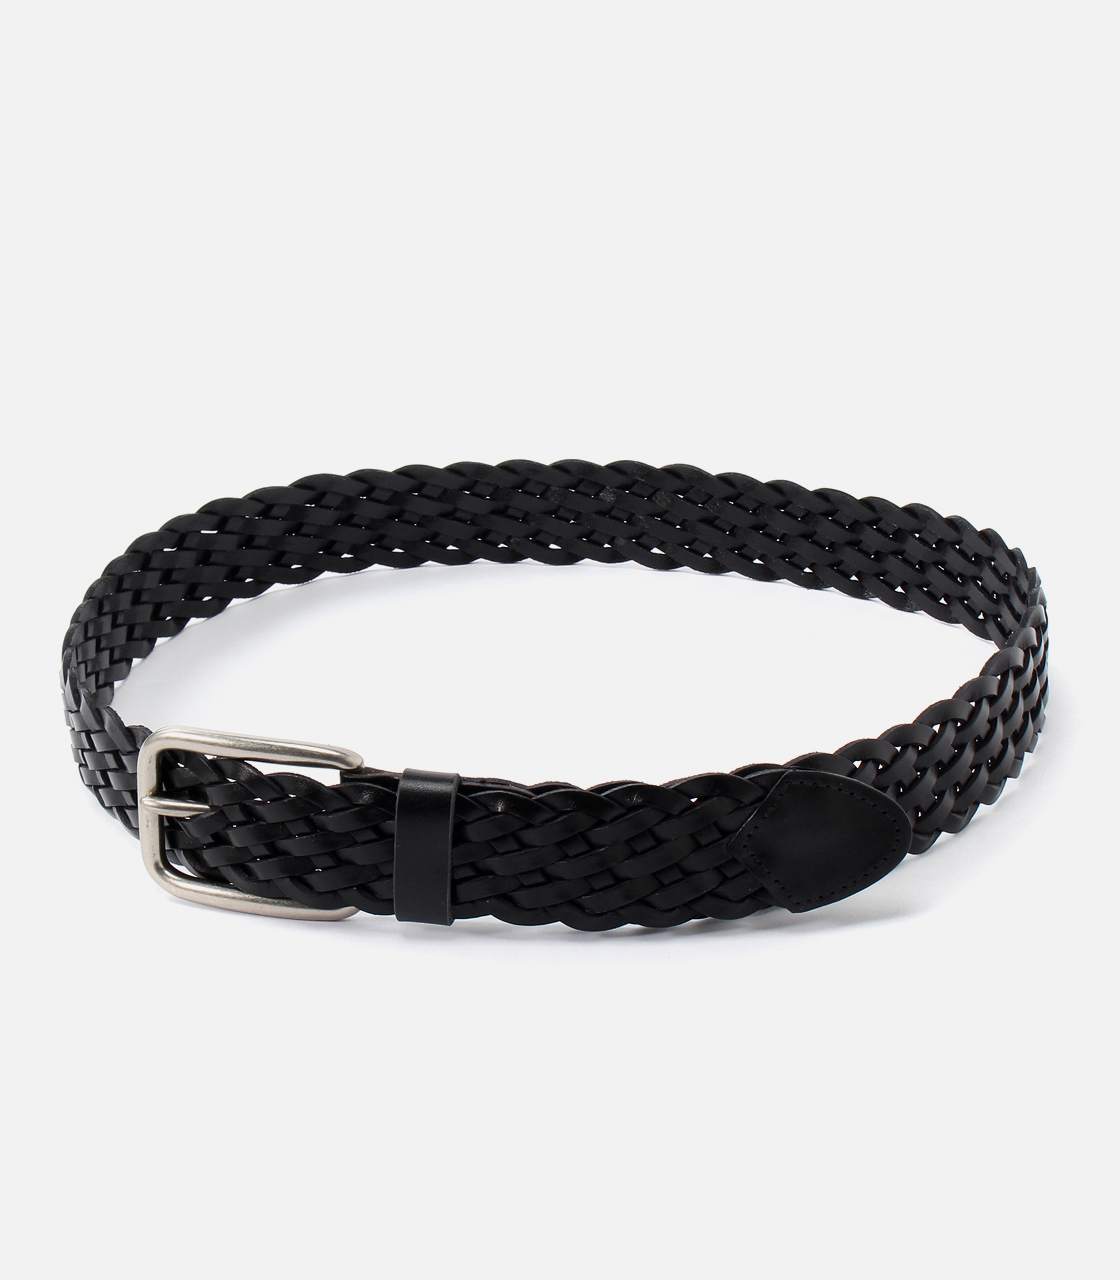 MESH LEATHER BELT 詳細画像 BLK 1